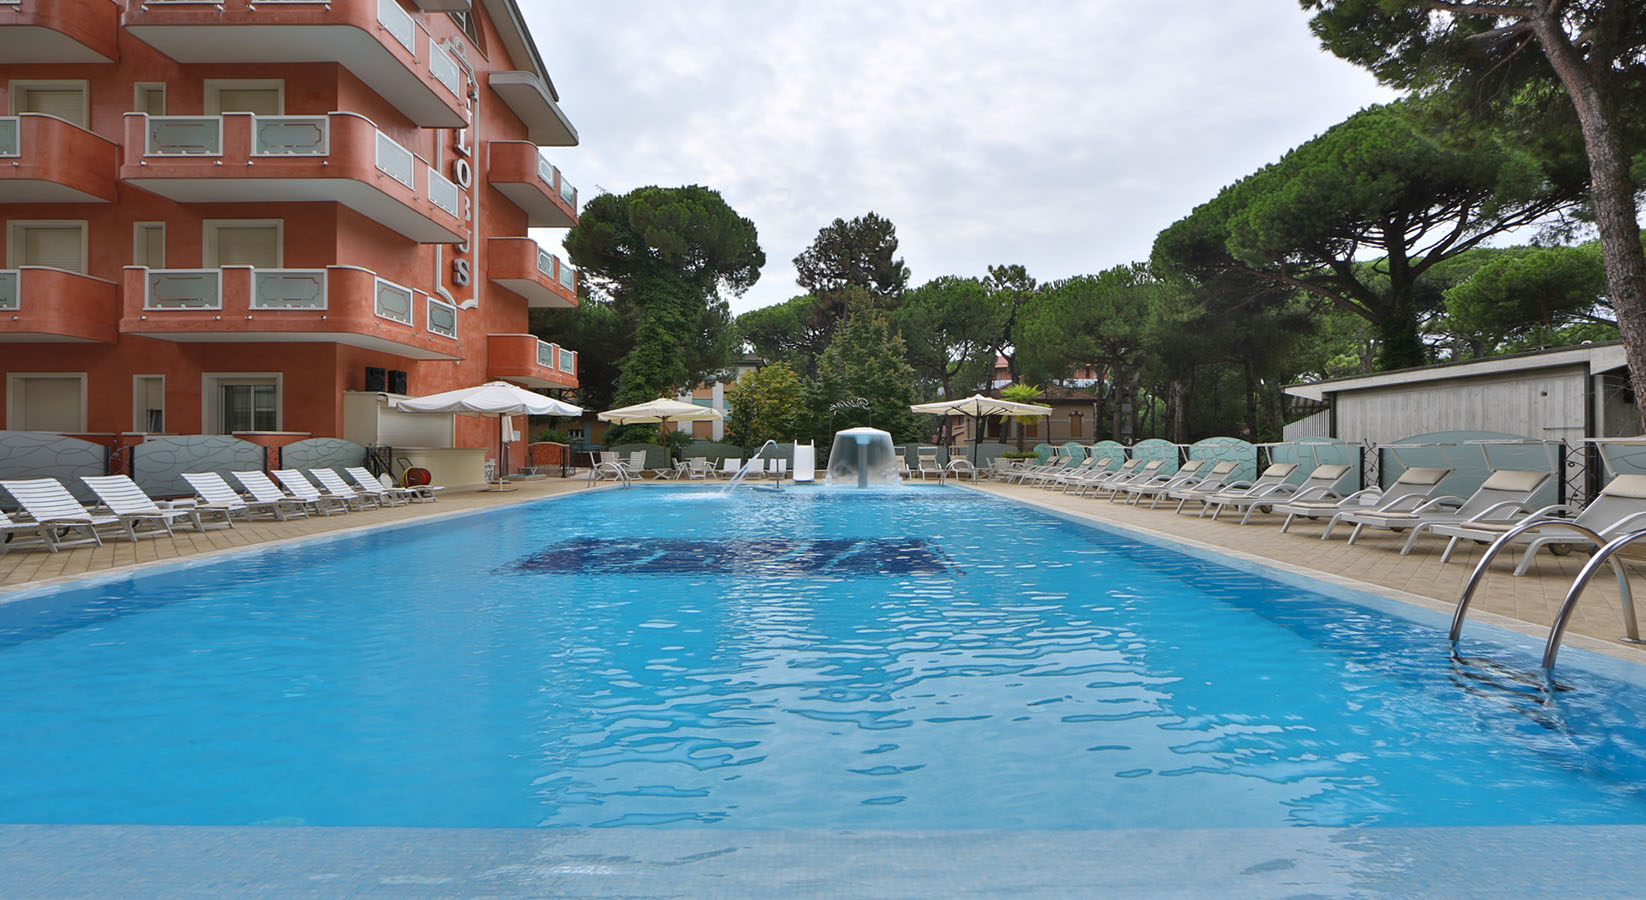 Milano Marittima - Hotel Globus, Sure Hotel Collection by Best Western